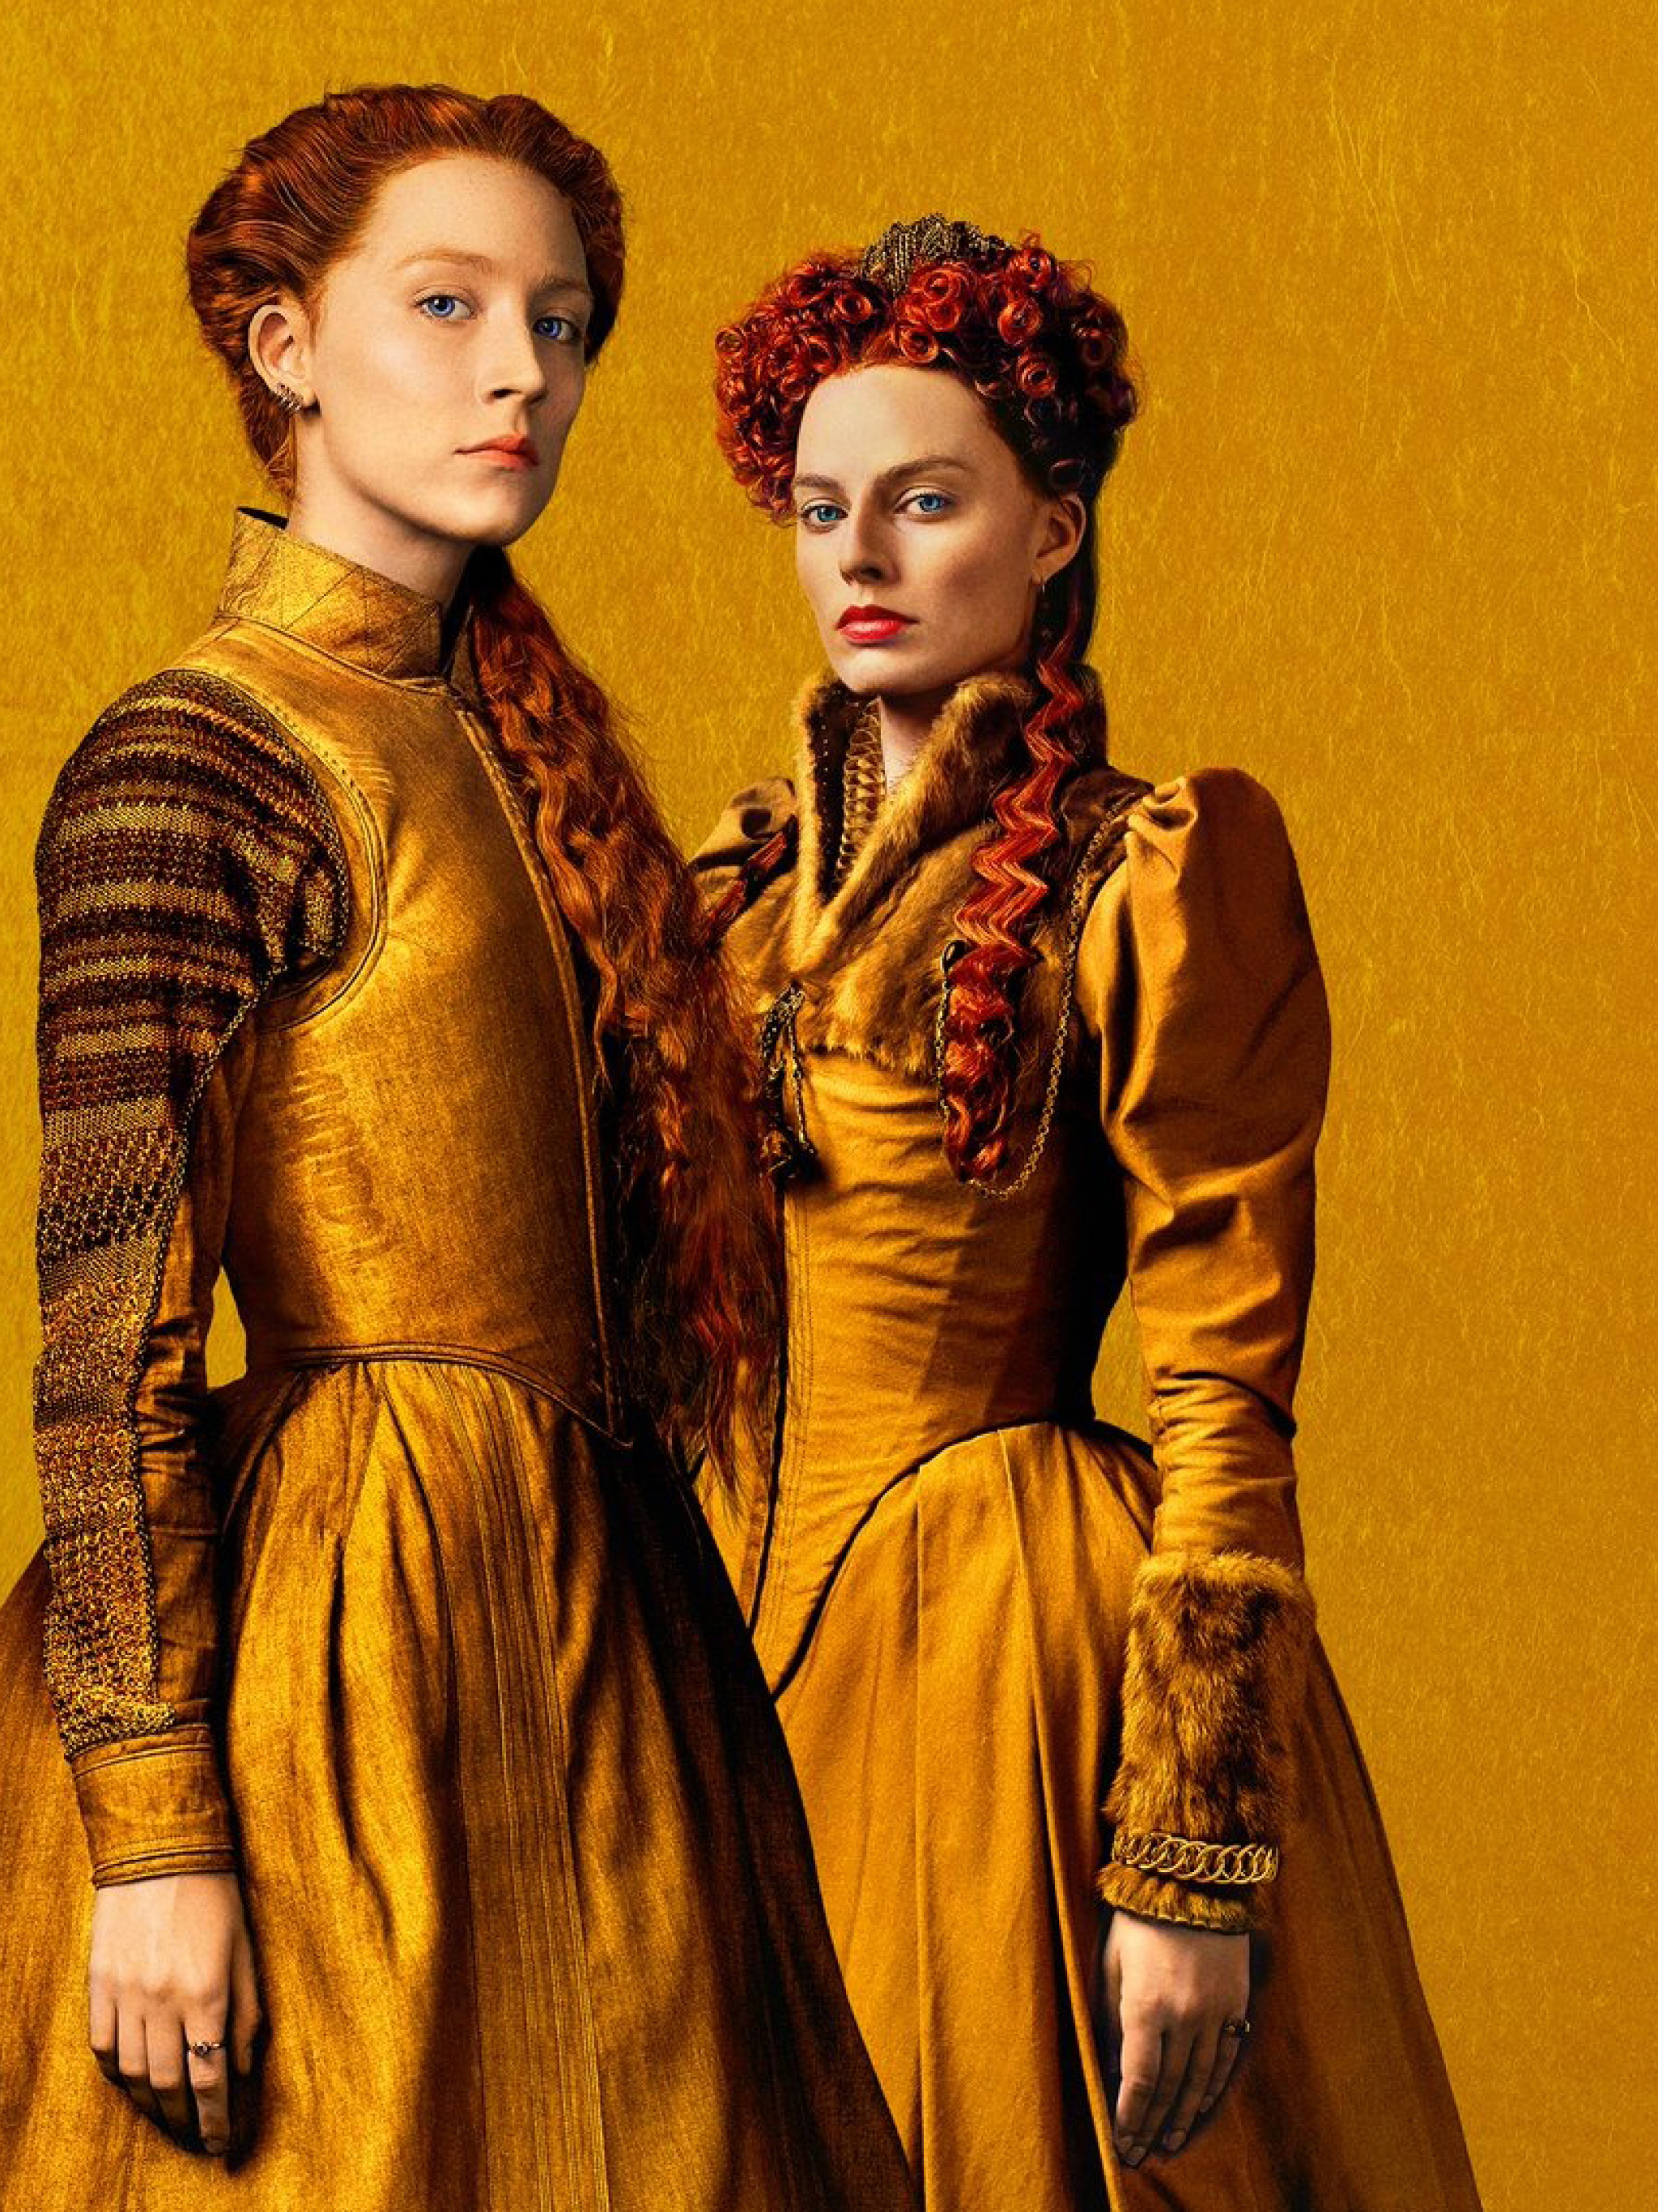 2048x2732 Margot Robbie and Saoirse Ronan in Mary Queen of Scots 2048x2732